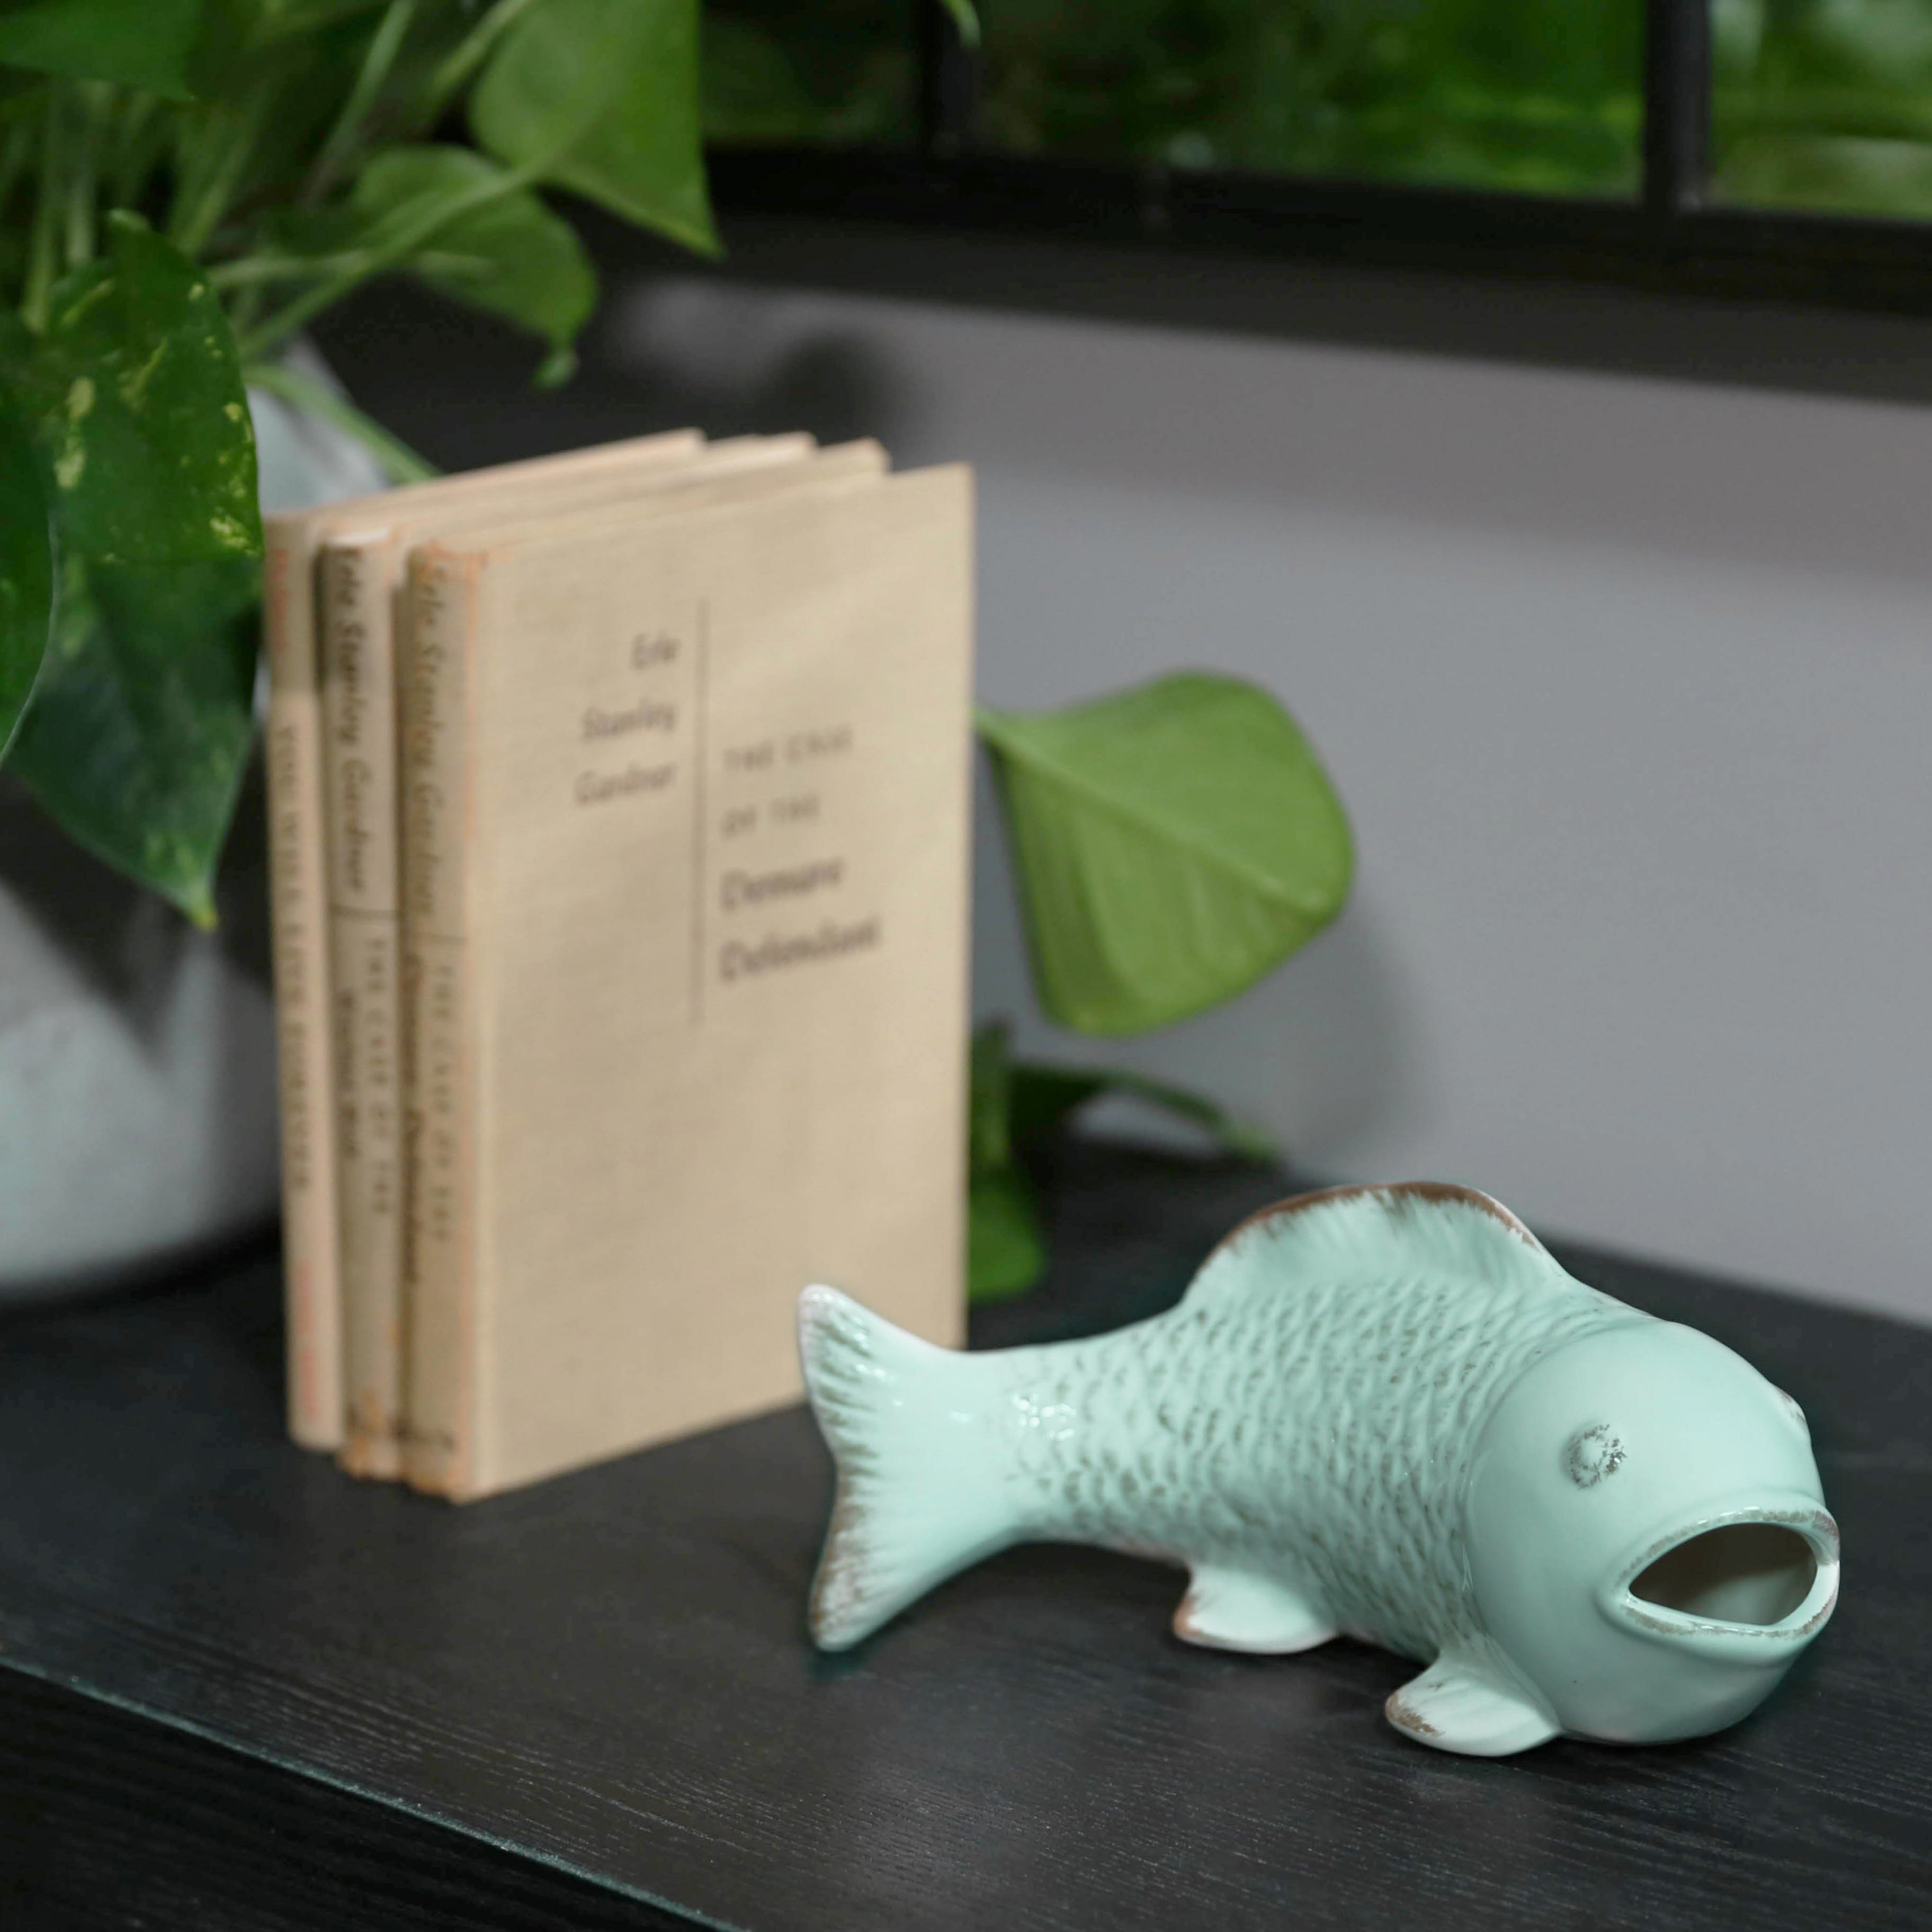 Urban Trends Collection: Ceramic Fish Figurine Gloss Finish